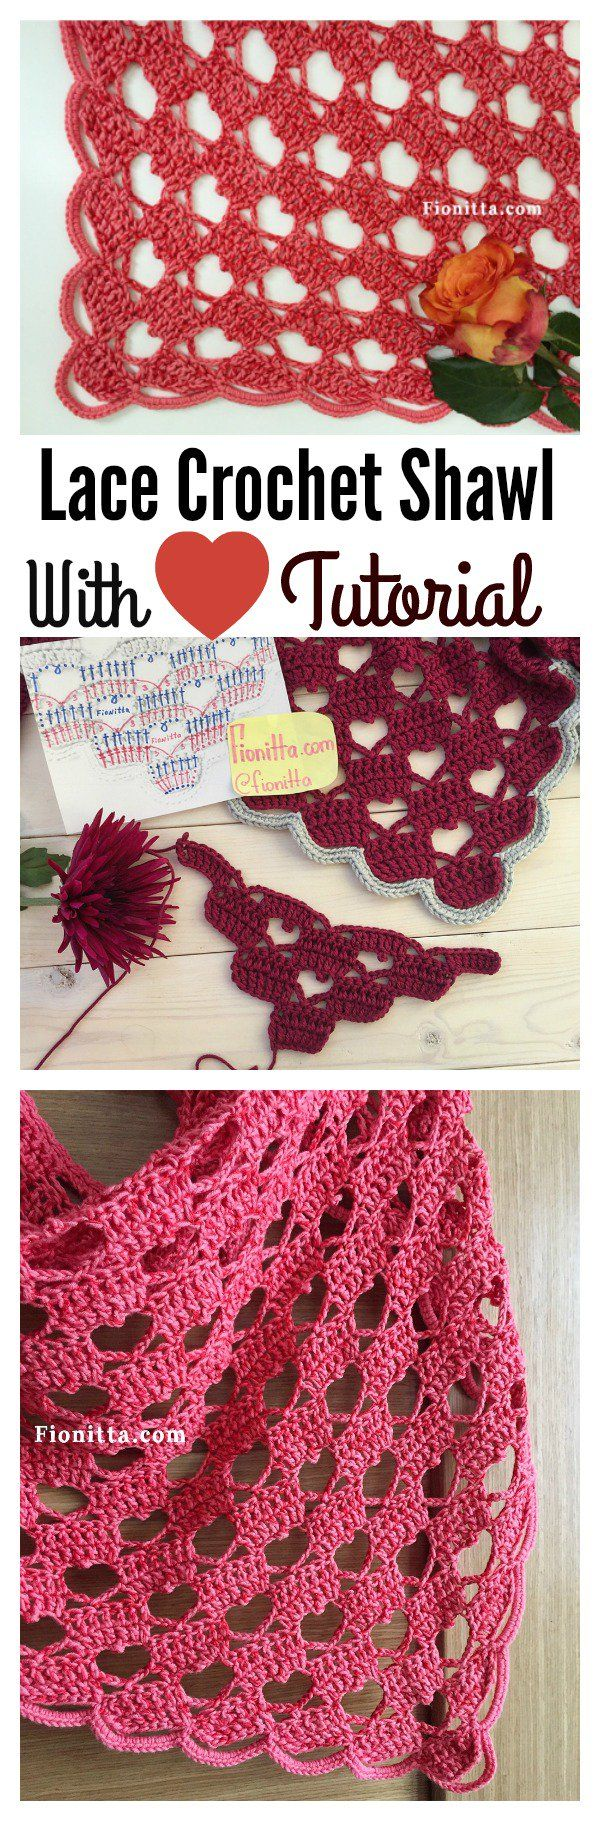 Lacy Crochet Shawl with Hearts Video Tutorial